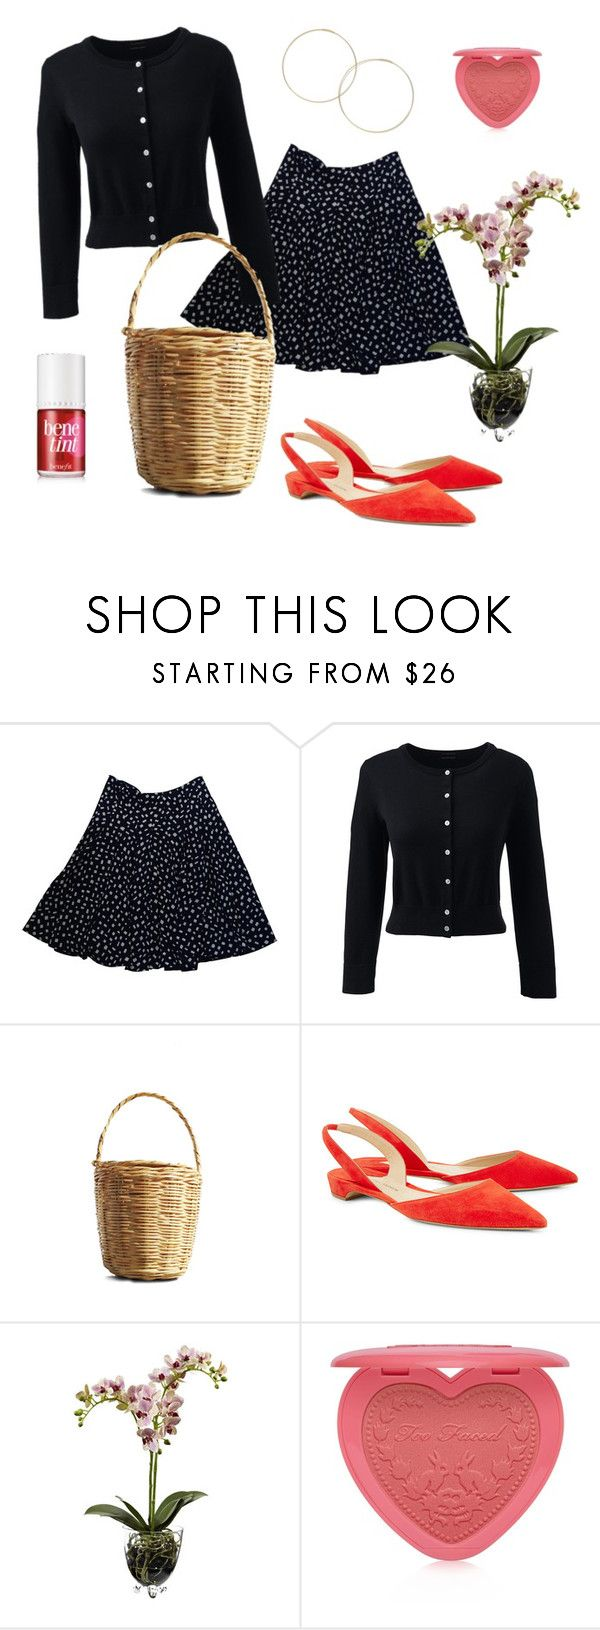 """""""jeanne damas"""" by dddddddi ❤ liked on Polyvore featuring Prada, Lands' End, Paul Andrew, Nearly Natural, Too Faced Cosmetics and plus size clothing"""